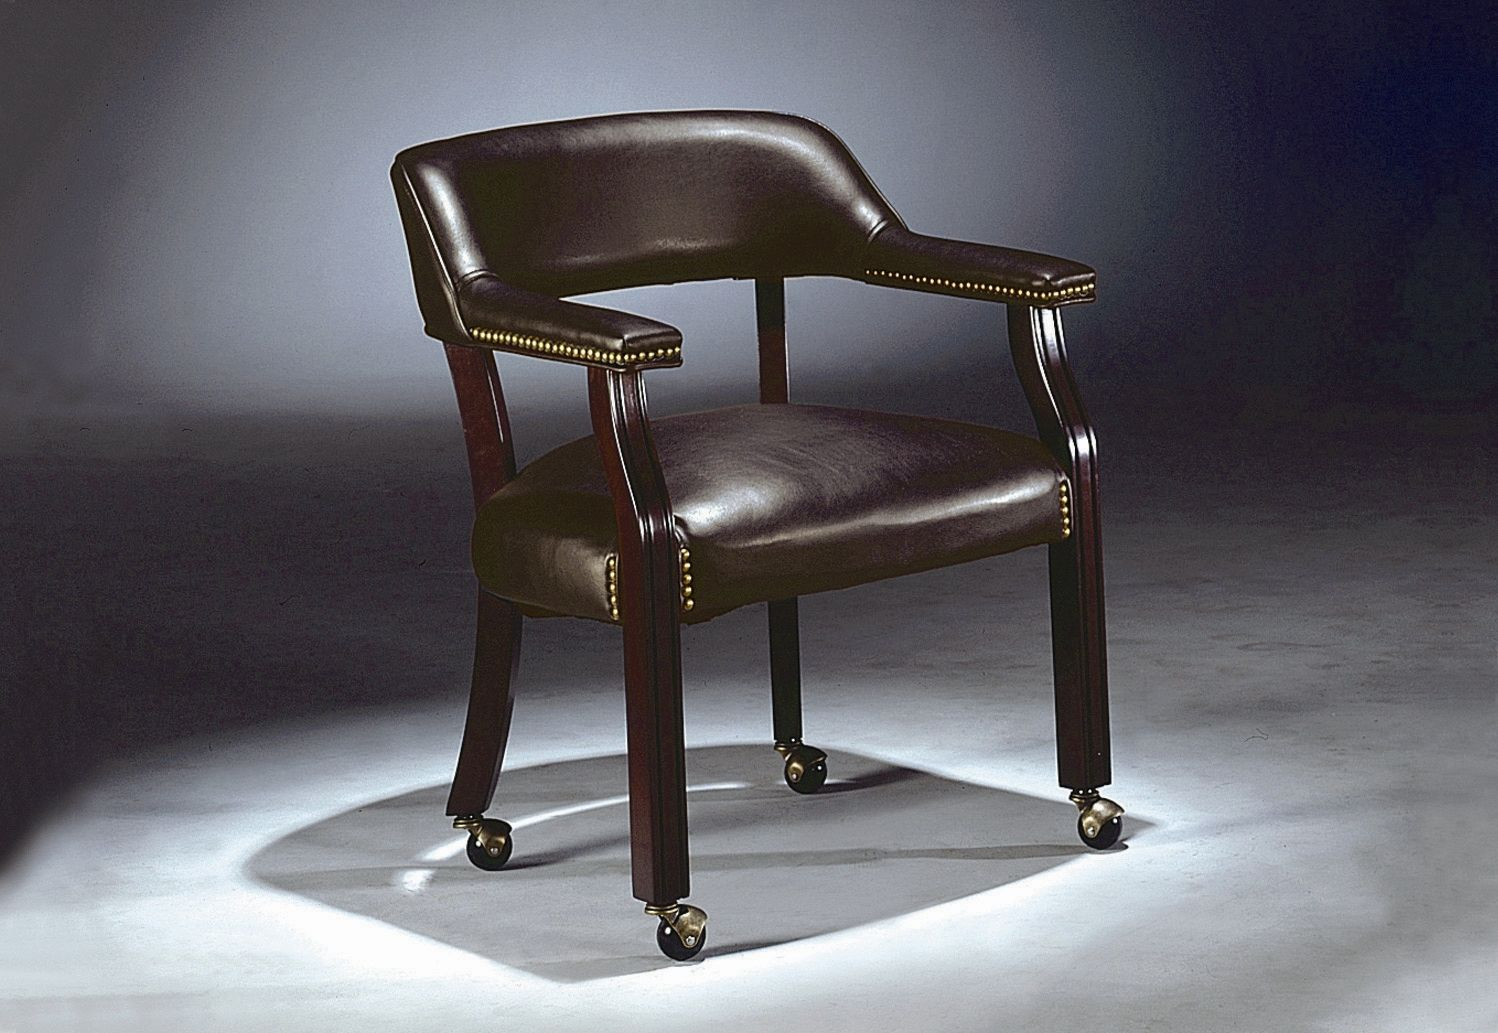 I Love This Leather Studded Captain S Chair With Wheels It S On